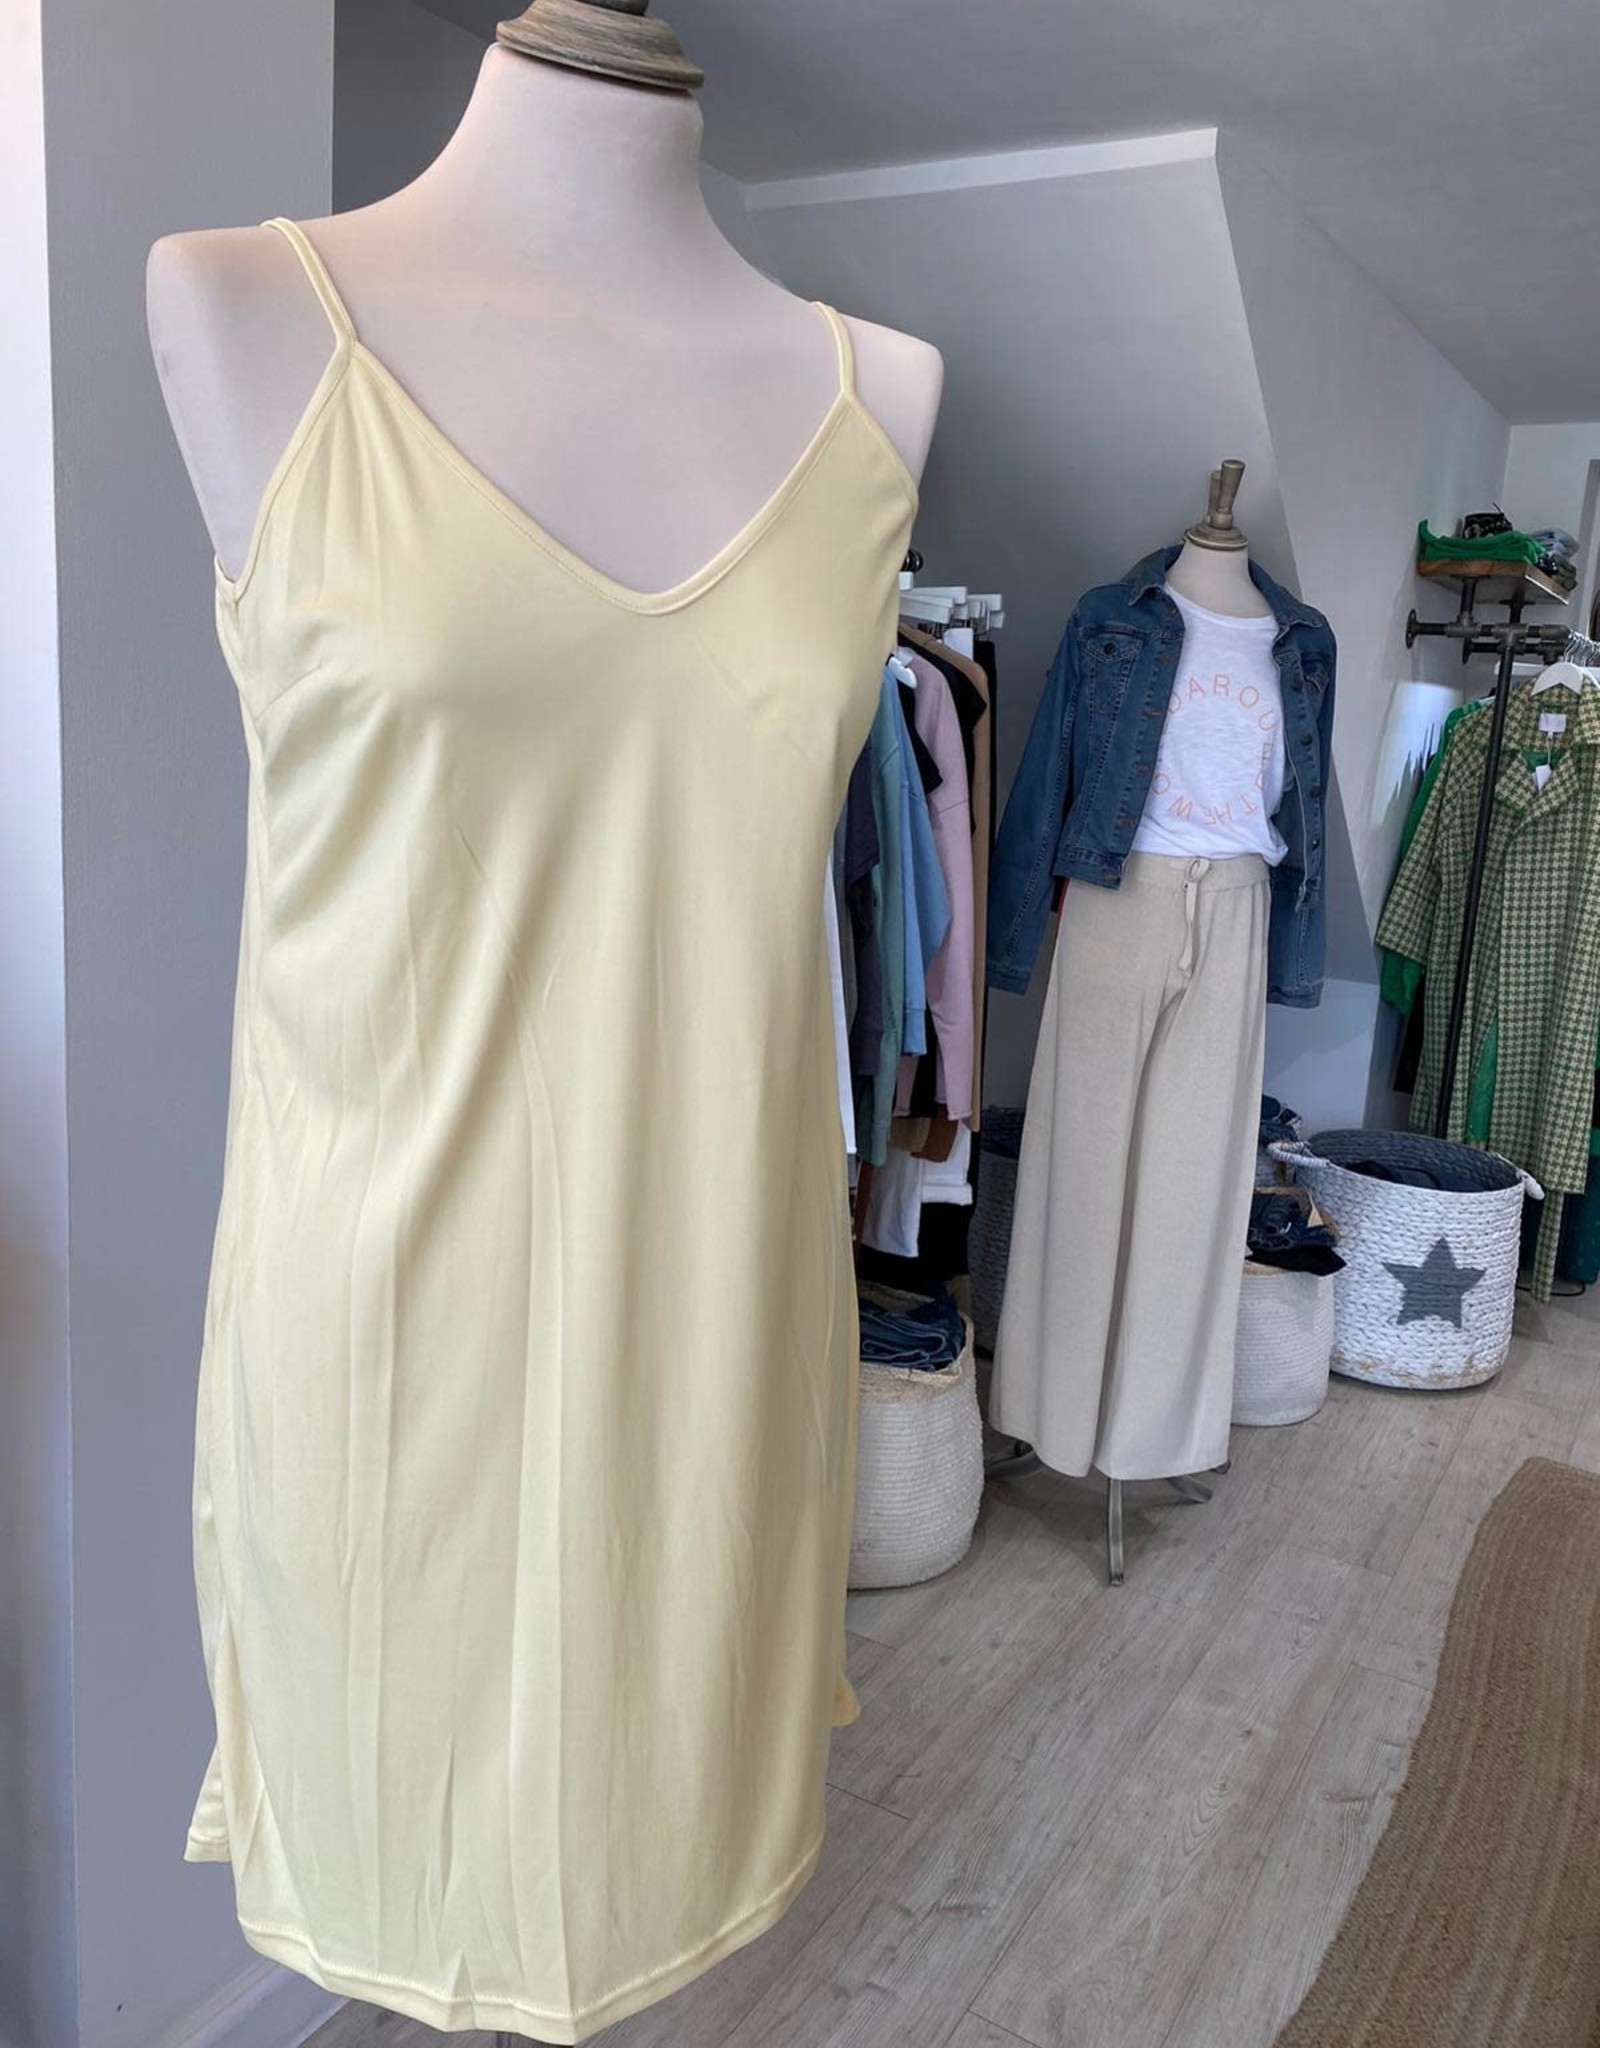 COSTER COPENHAGEN DOLLY SMOCK DRESS IN SPLASH YELLOW 212-5253 FROM COSTER